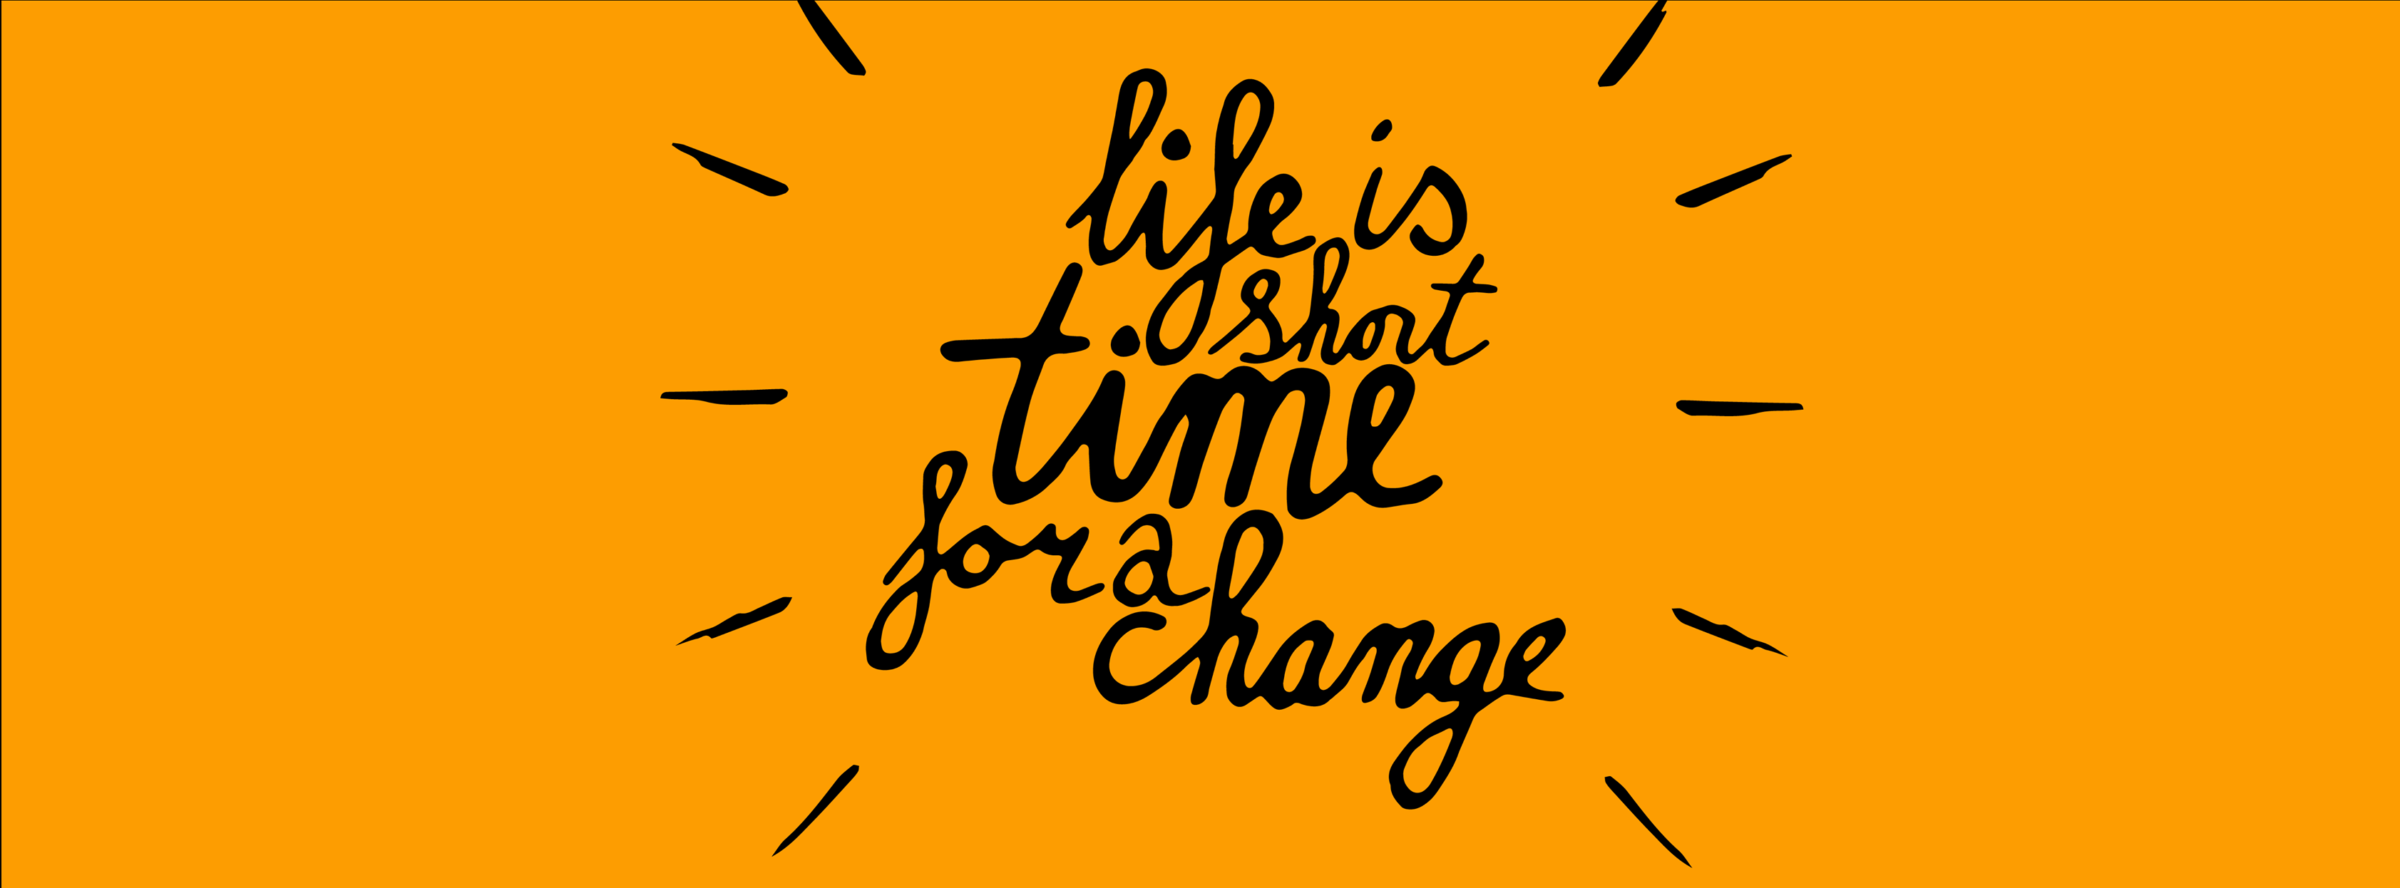 Life is short time for a change